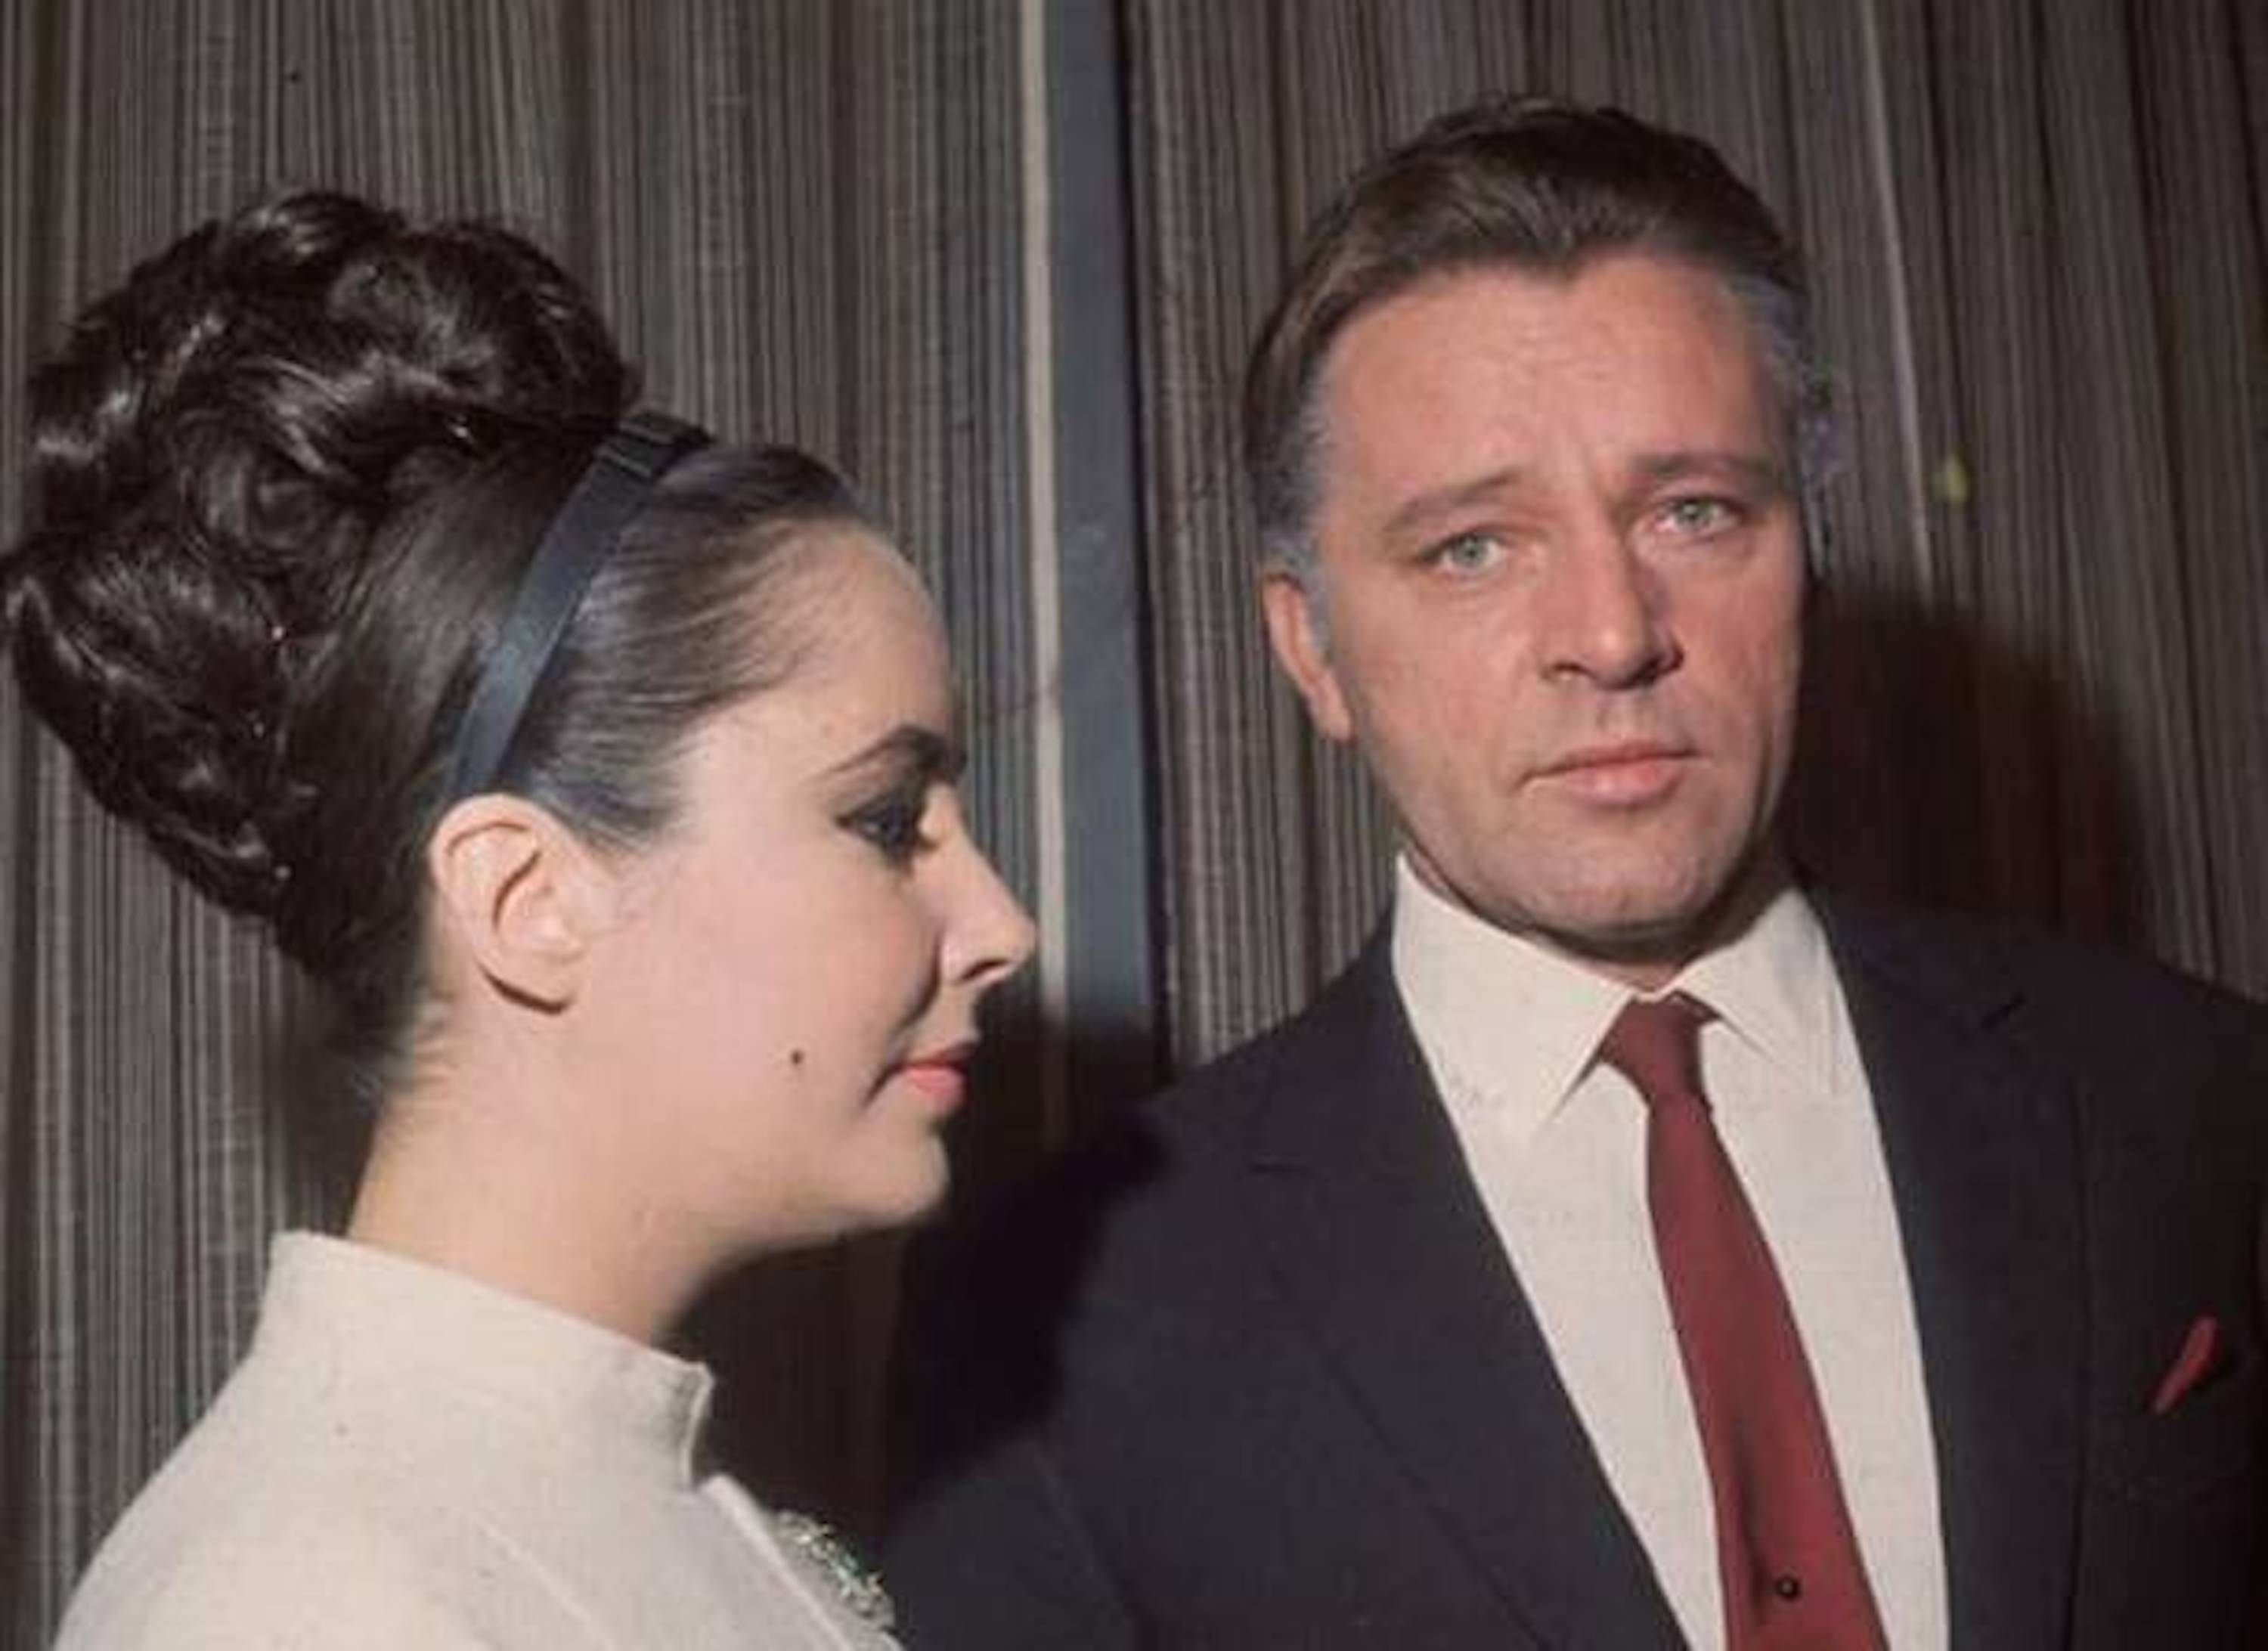 NOLA: How many times did elizabeth taylor marry richard burton